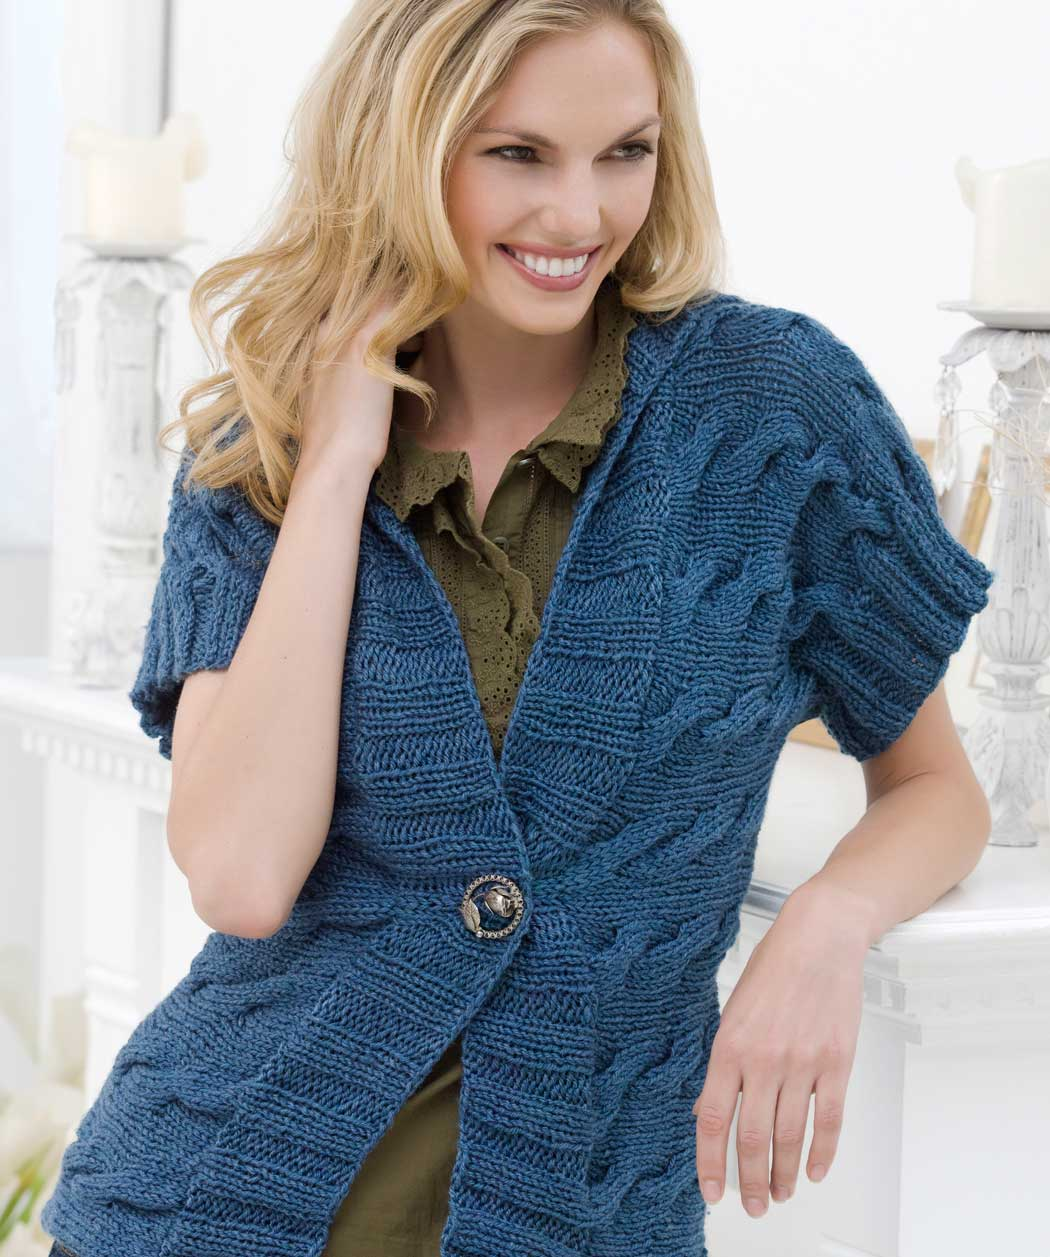 Knitting Cardigan Design : Knitted sweater patterns for women a knitting